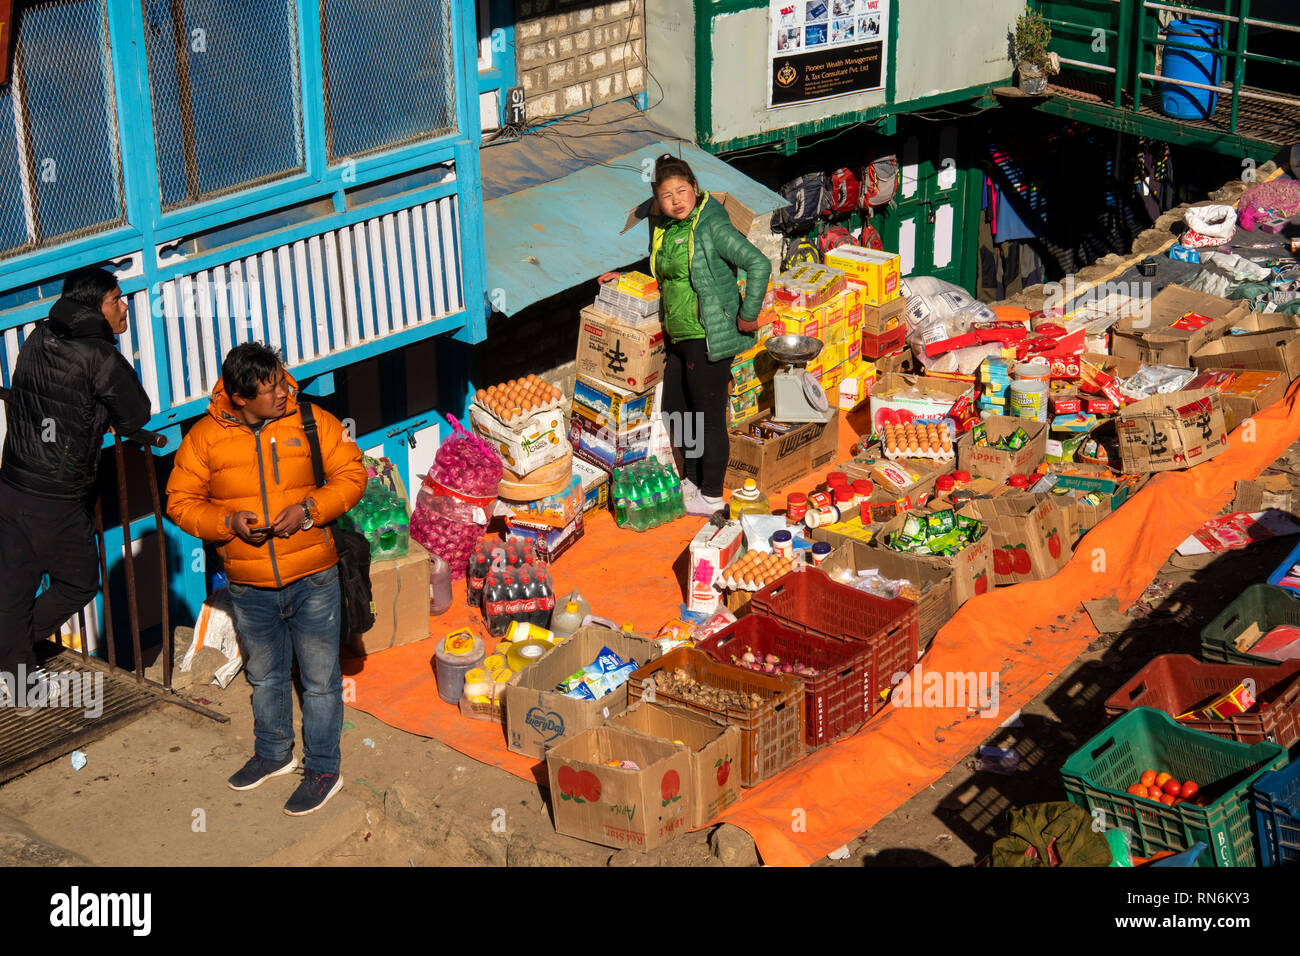 Nepal, Namche Bazaar, Market, elevated view of household goods, eggs and packaged food on display - Stock Image